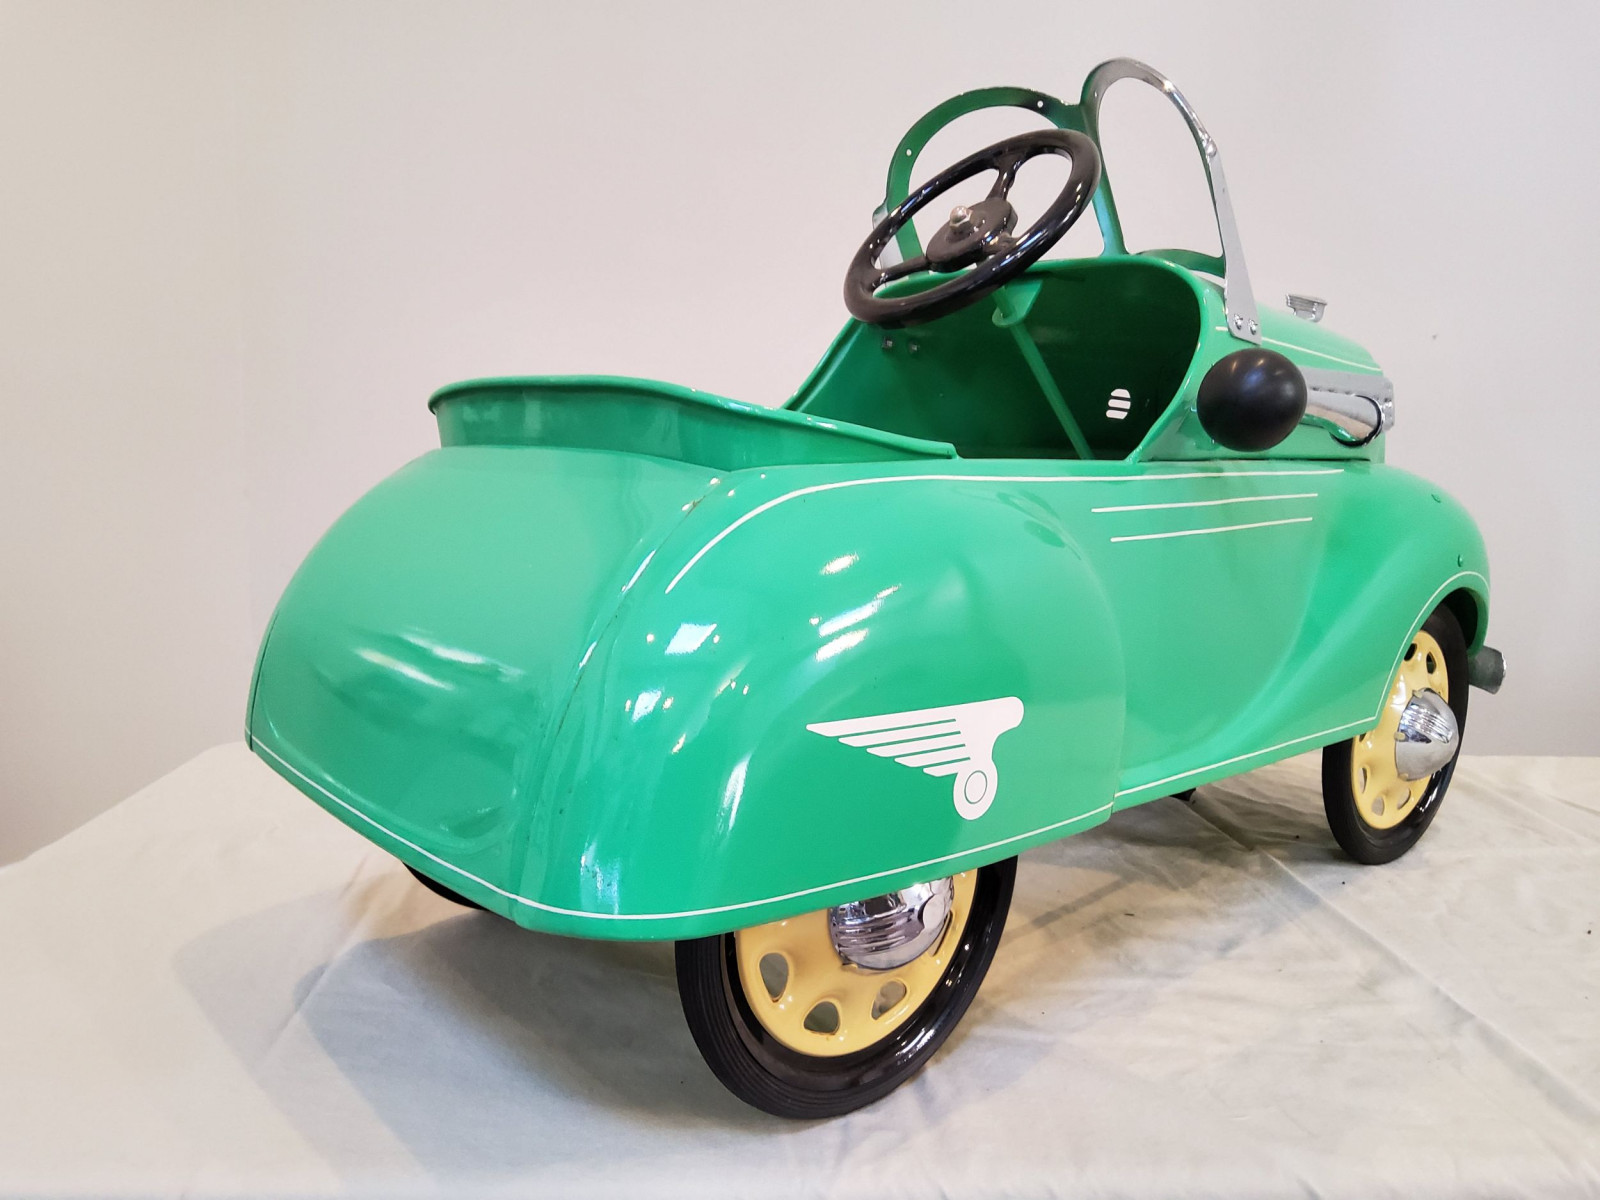 1939 Steelcraft Pedal Car - Image 5